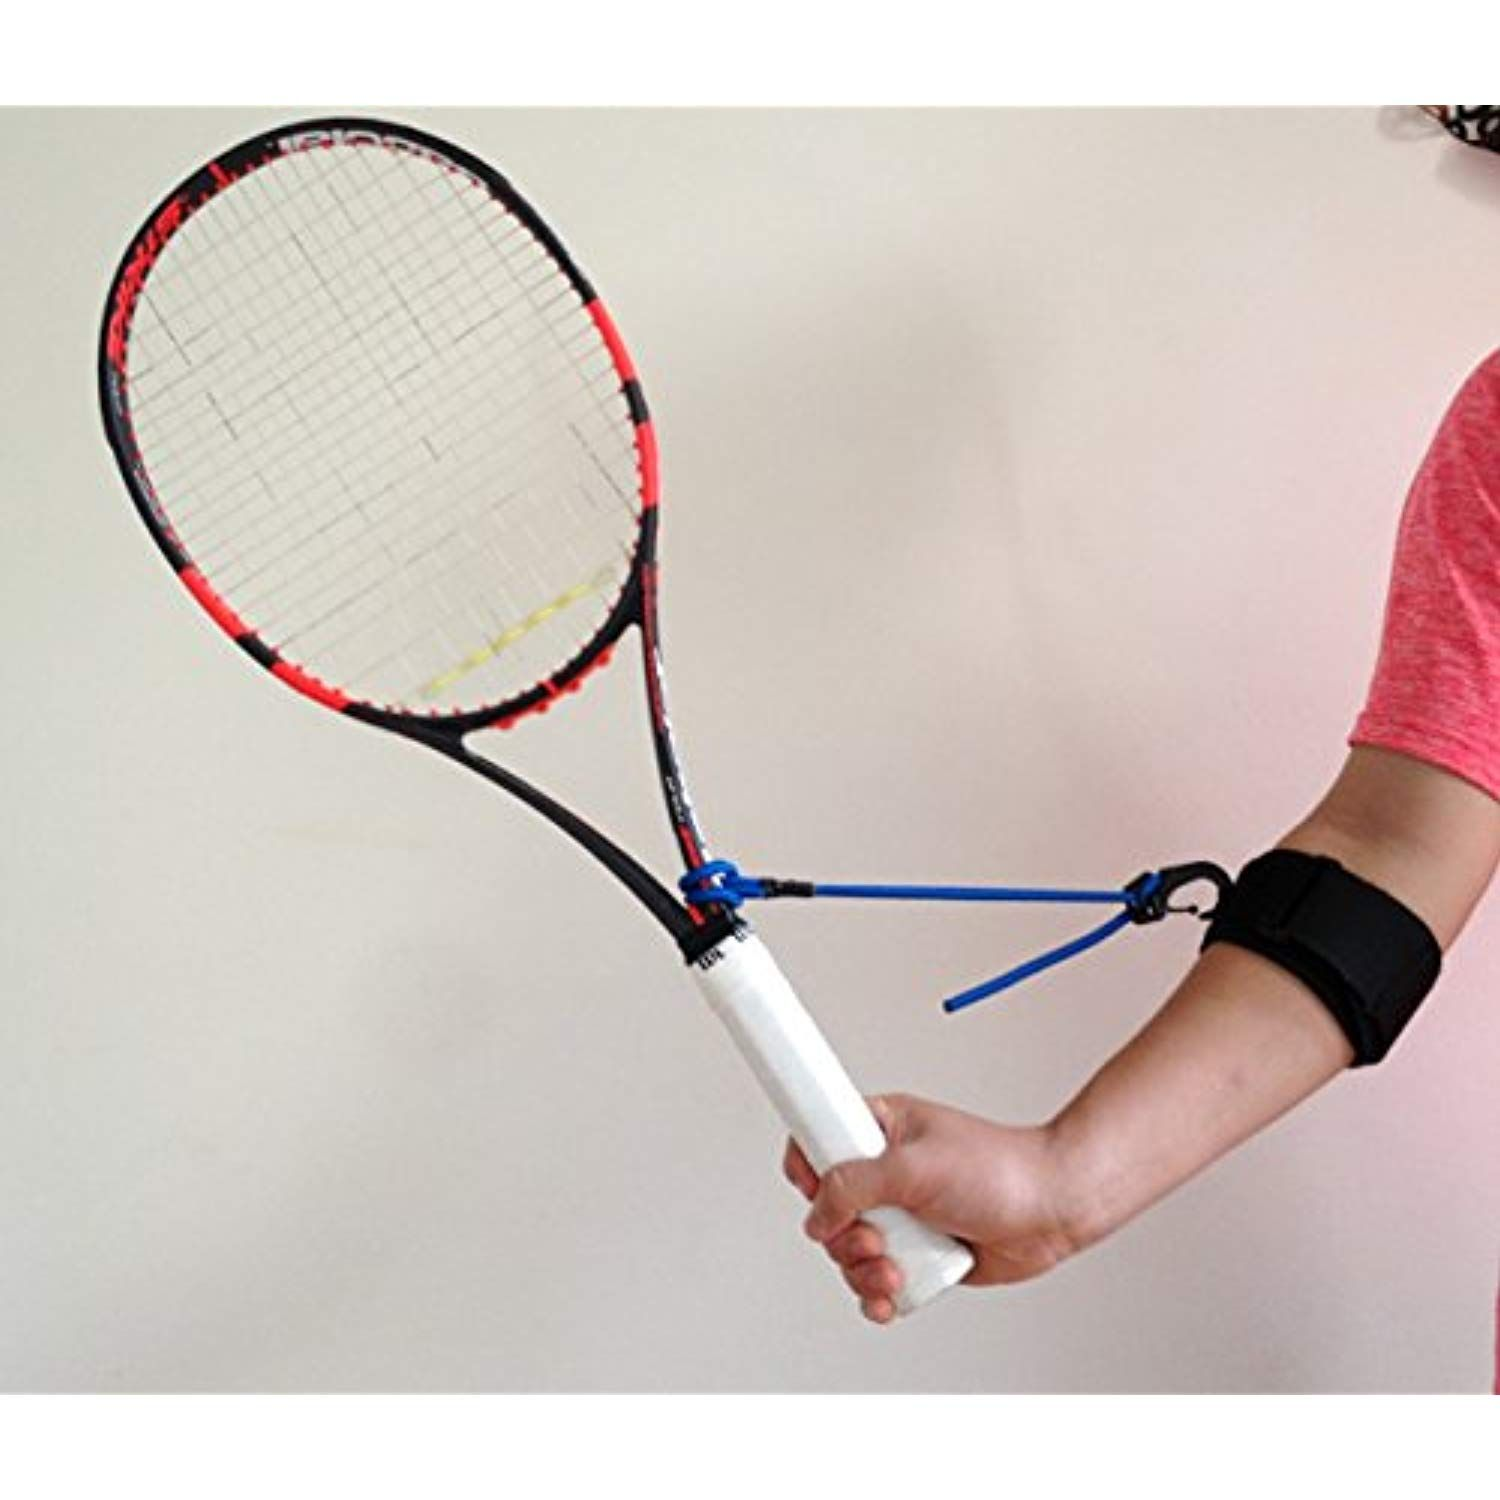 Tennis Swing Wrist Training Aid For Forehands Backhands Volleys And Serves Permawrist You Can Find Out More Details At Tennis Gifts Tennis Serve Tennis